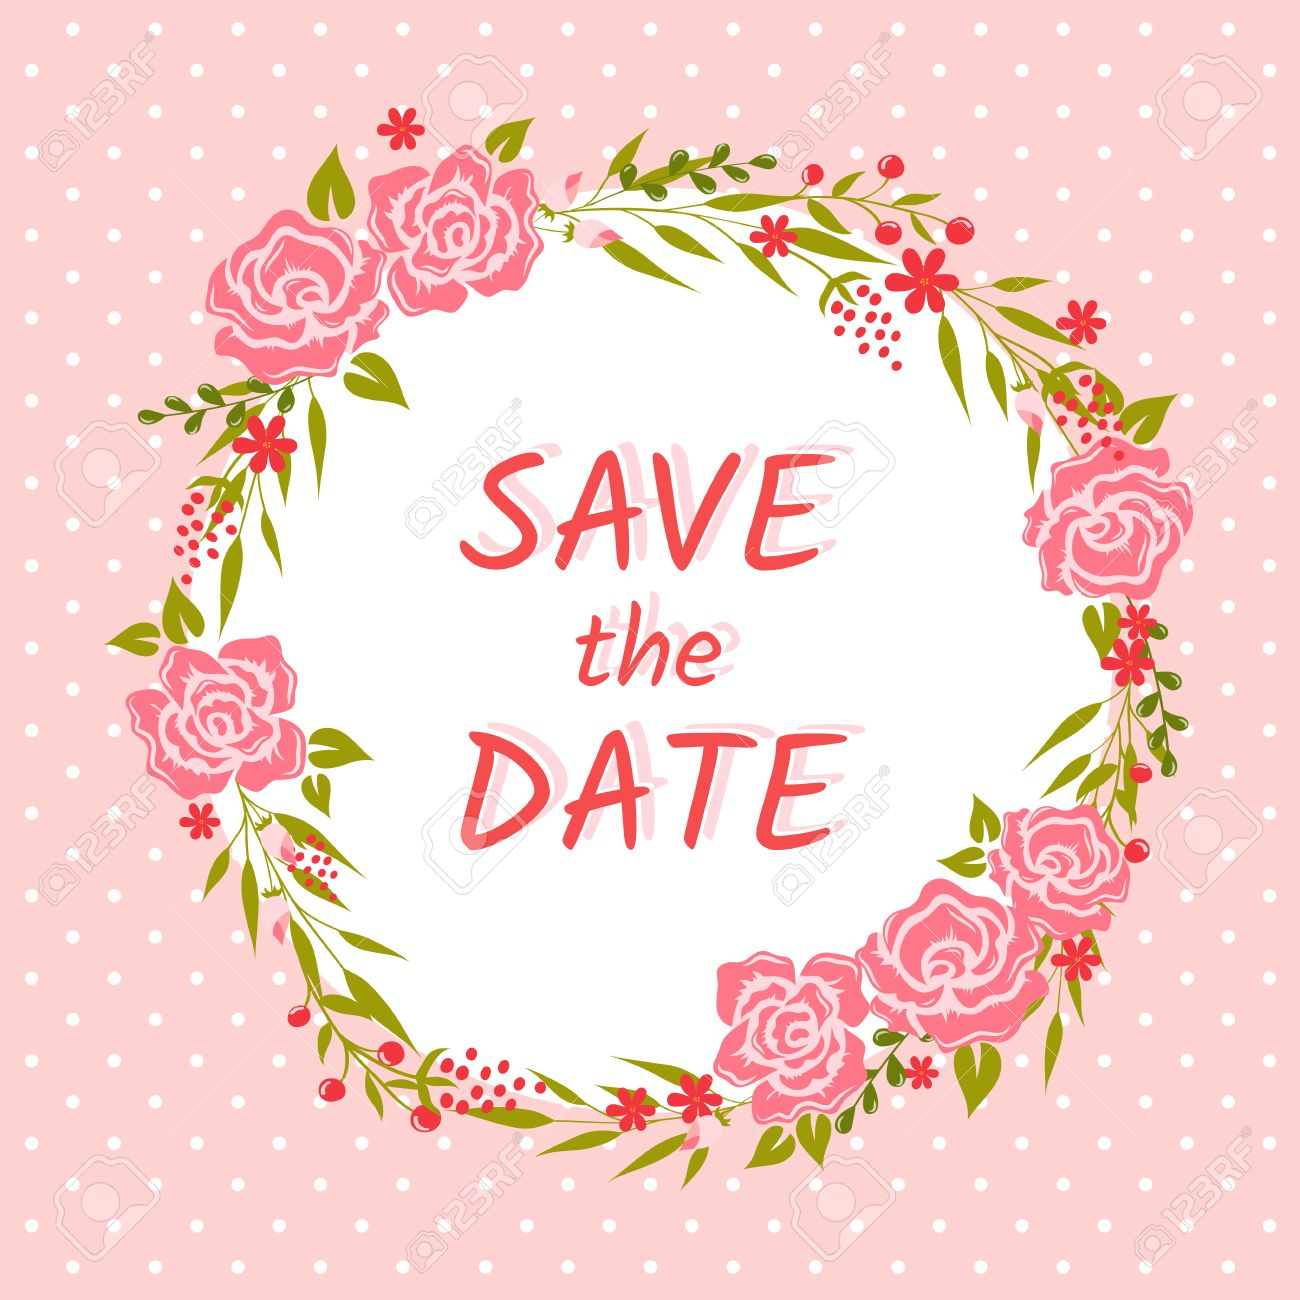 Save the date card cute wedding invitation with floral wreath vector illustration save the date card cute wedding invitation with floral wreath and polka dot background stopboris Images